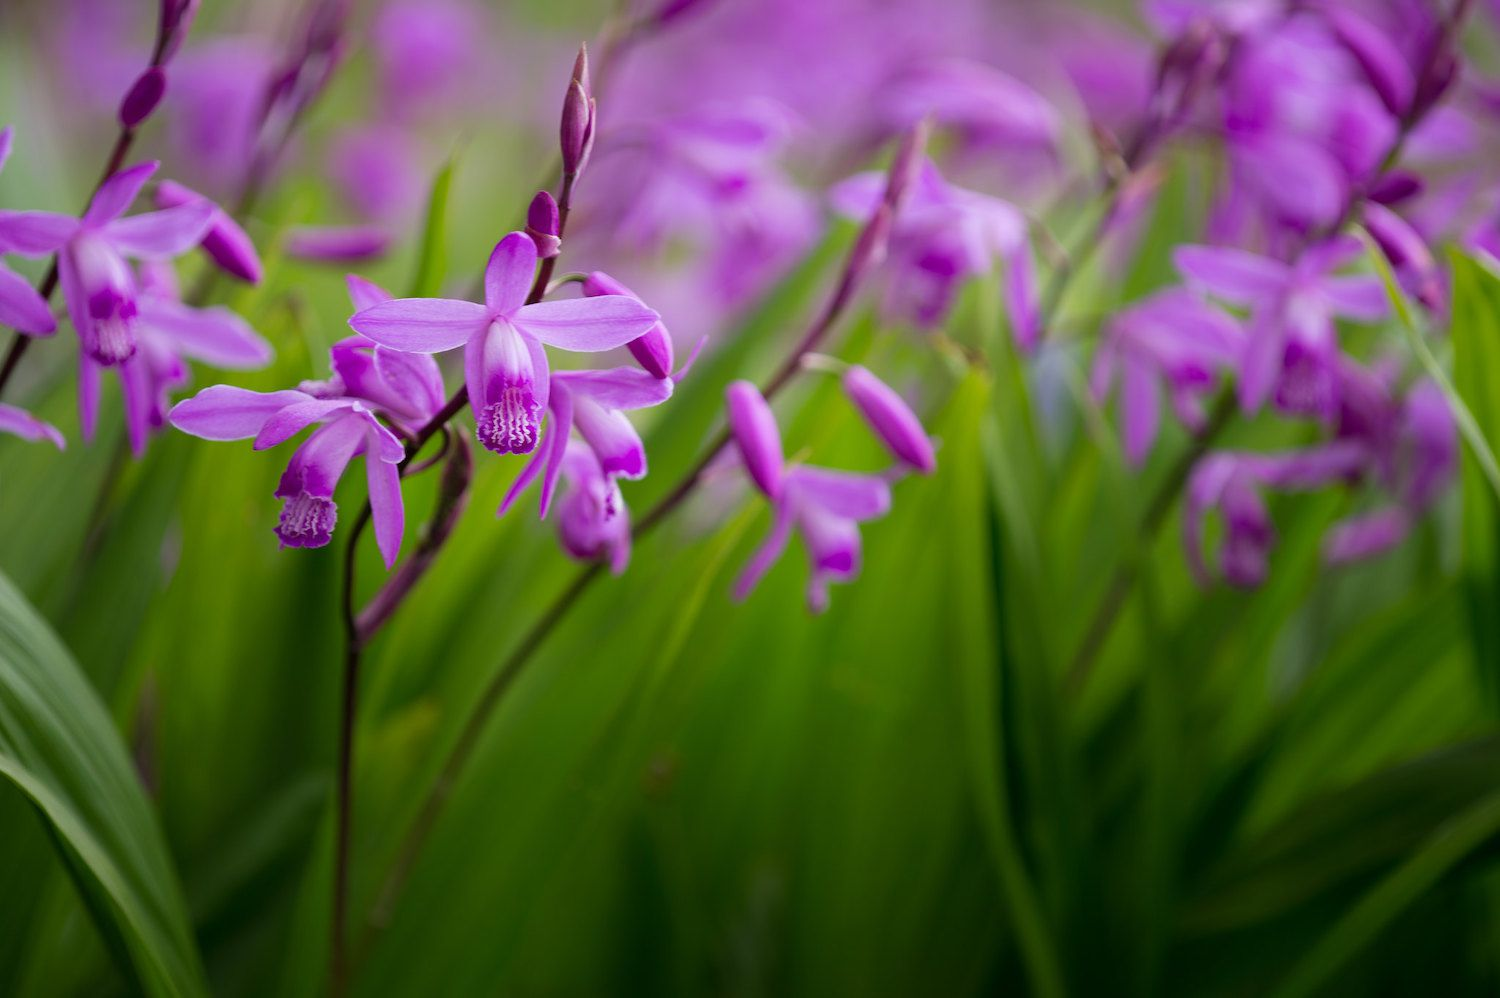 Small, purple flowers clustered amid a grassy background